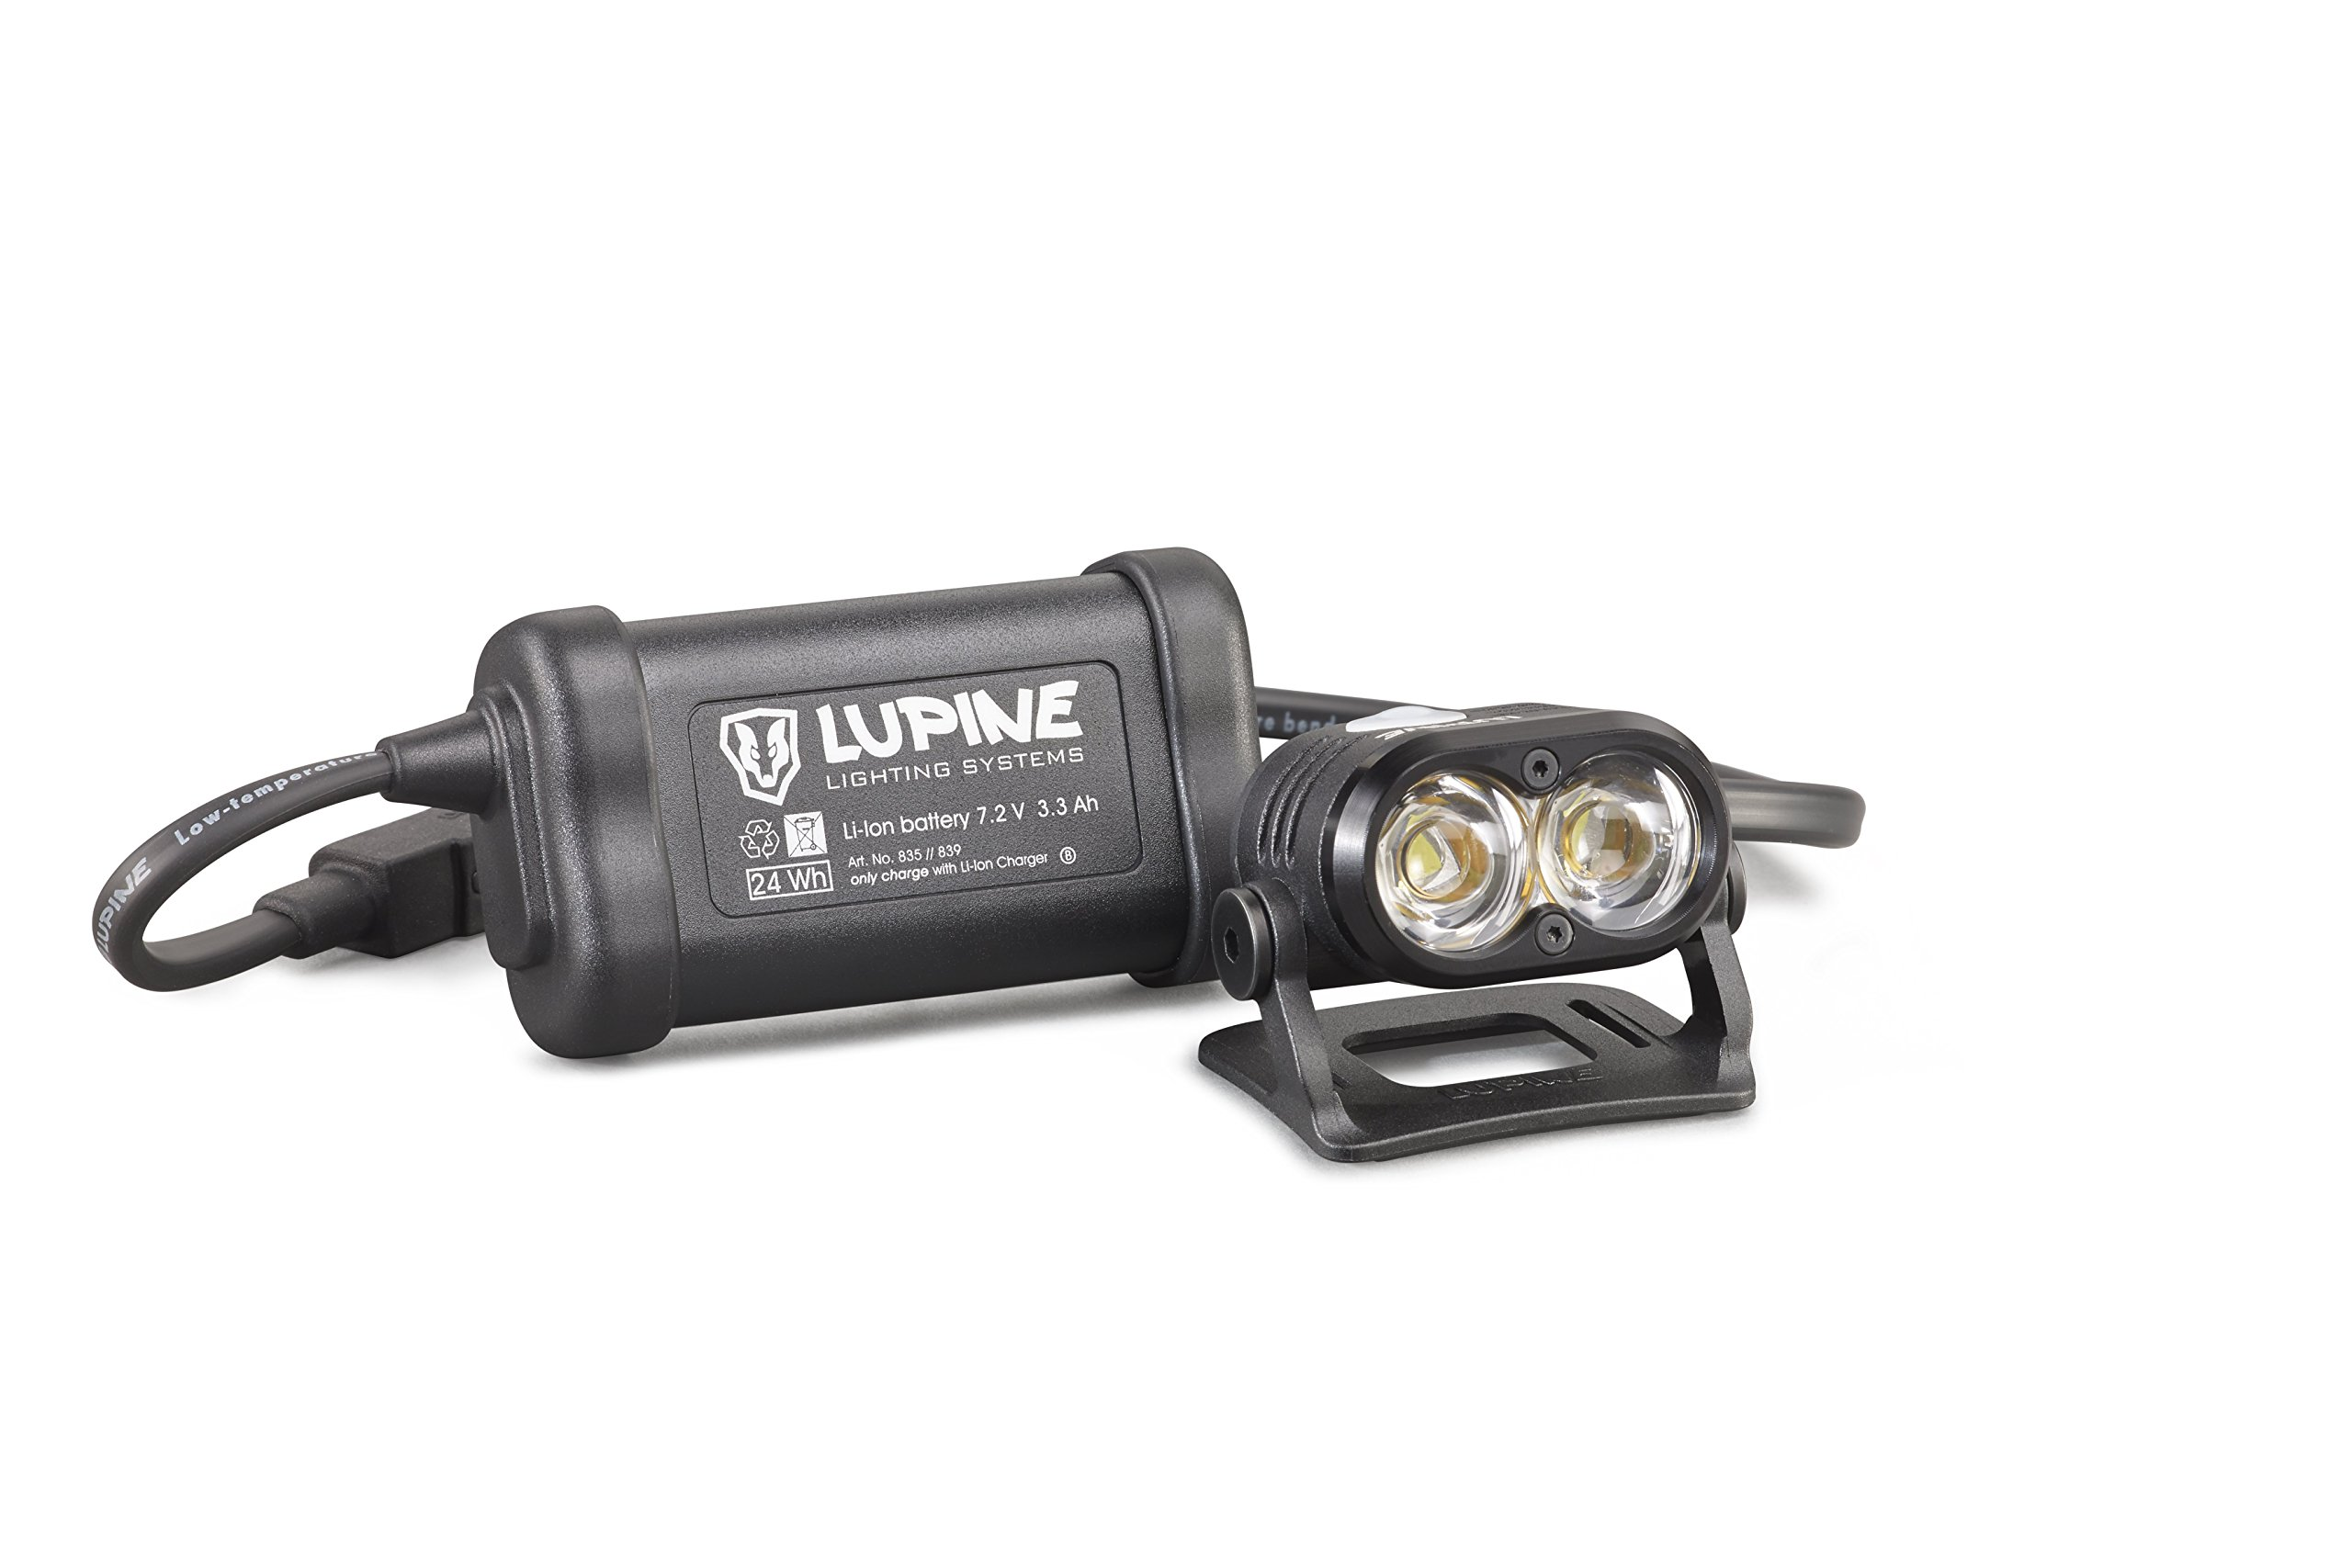 Lupine Lighting Systems Piko 4 1800 Lumen 3.3 Ah hardcase battery with velcro, helmet mount with velcro, Wiesel charger, 120cm extension cable (2018 Model) by Lupine Lighting Systems (Image #1)